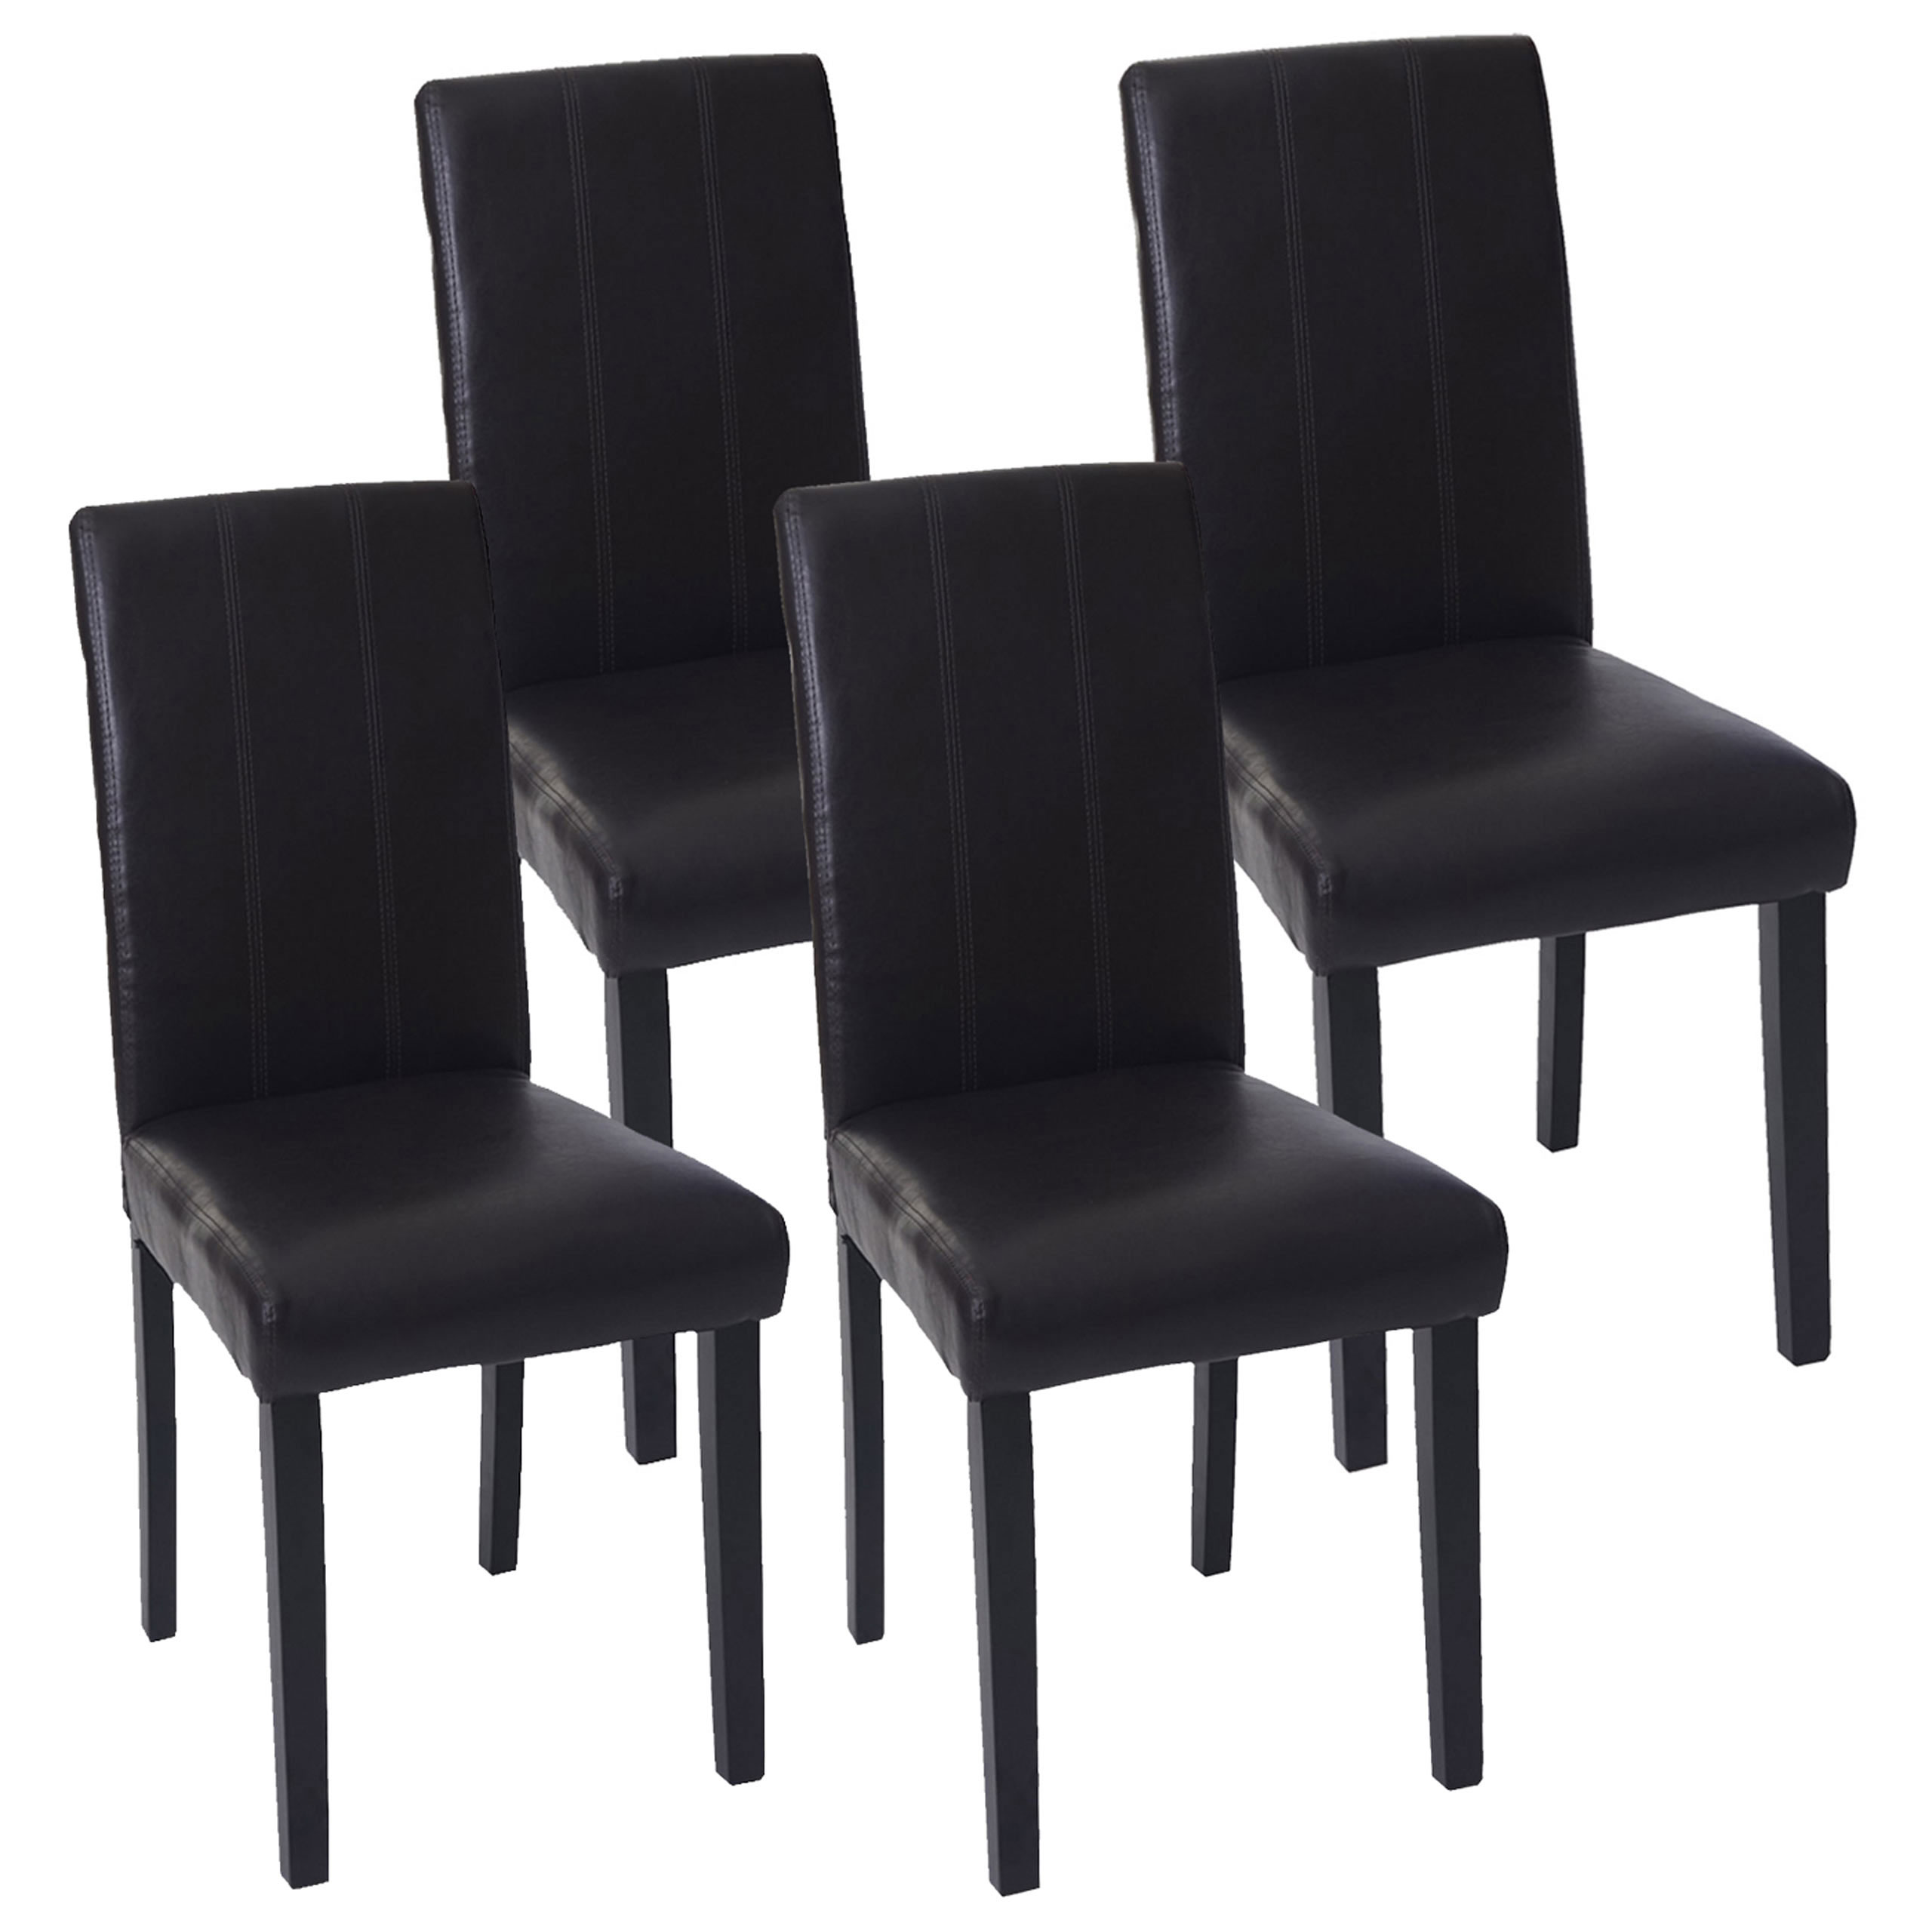 4x esszimmerstuhl florina stuhl lehnstuhl kunstleder braun dunkle beine. Black Bedroom Furniture Sets. Home Design Ideas